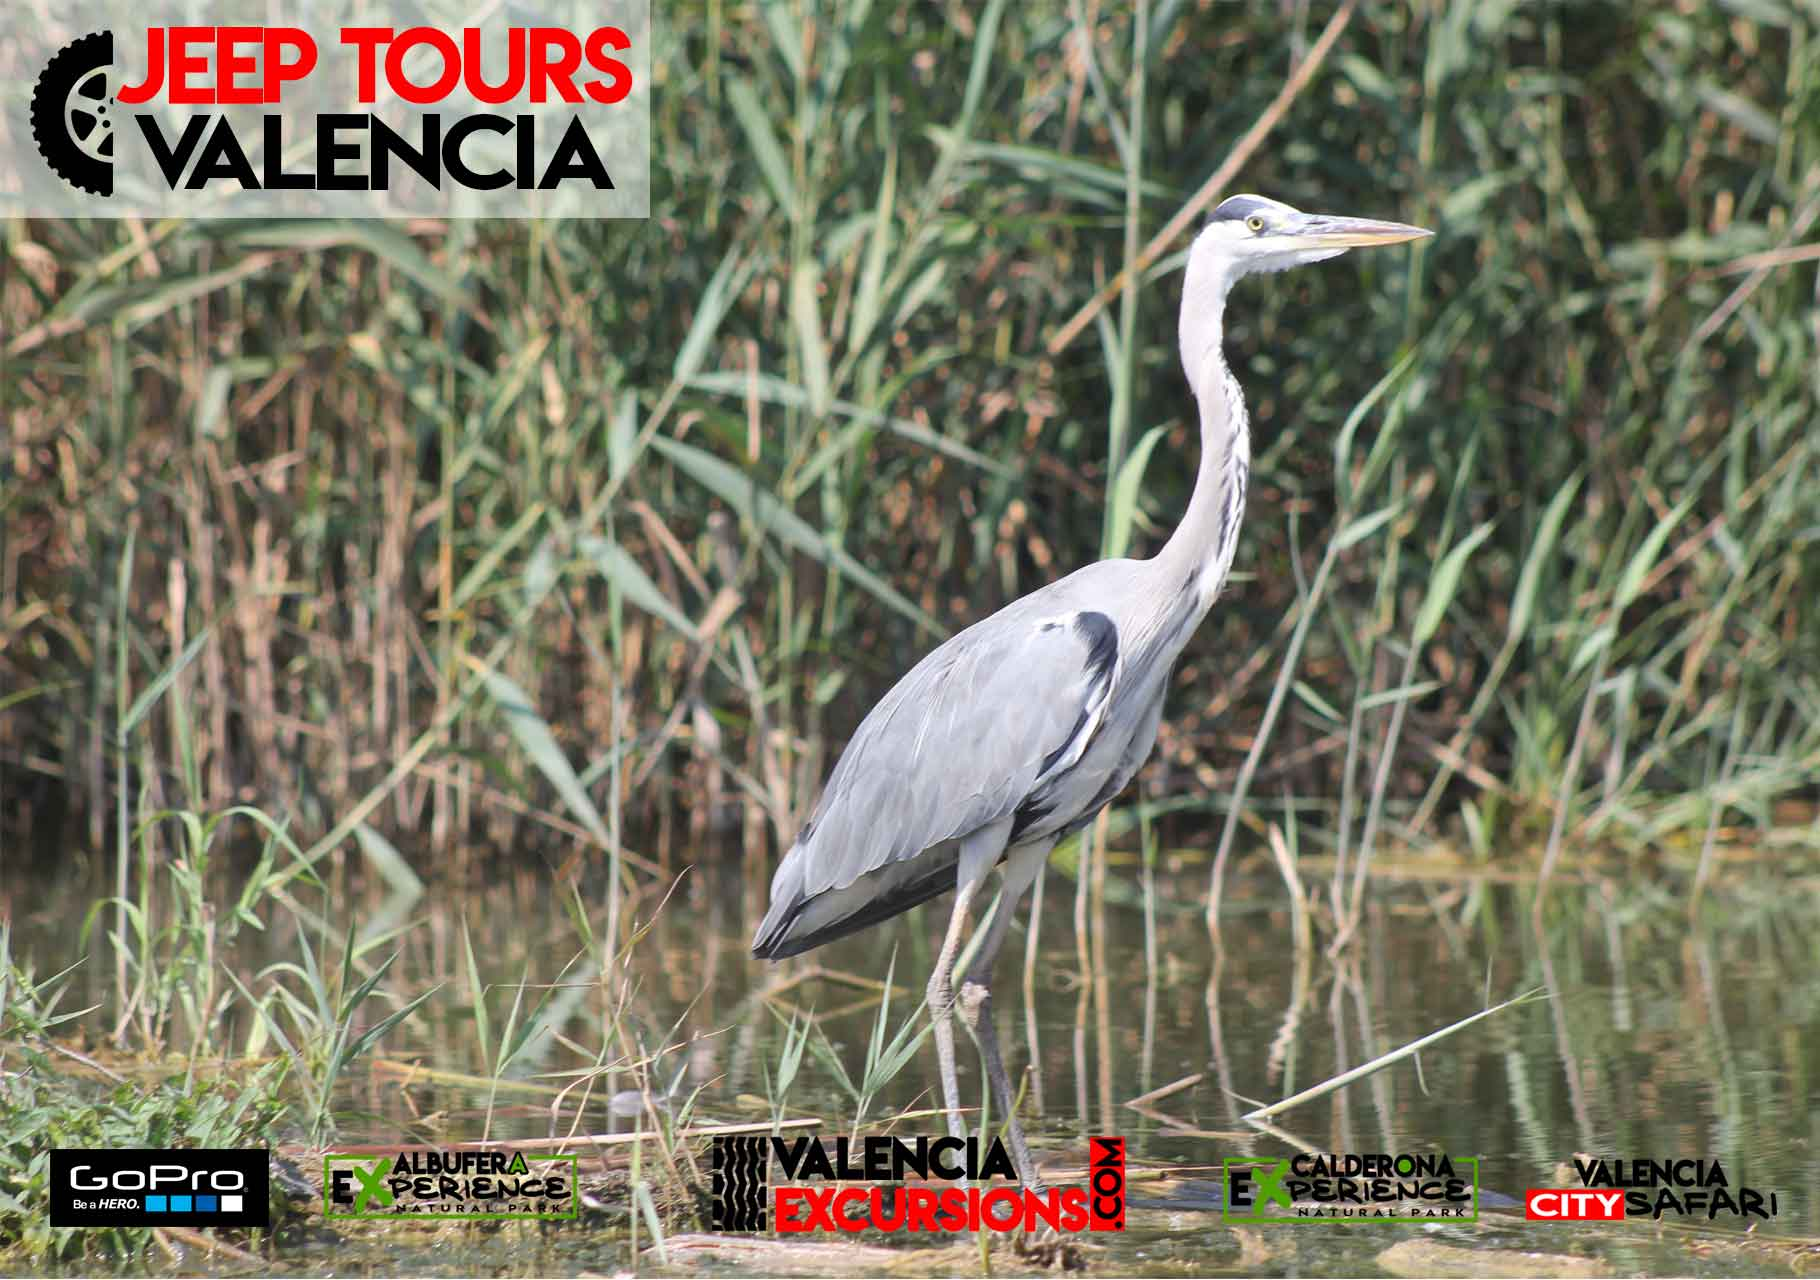 Wild Life in Albufera Valencia in Albufera National Park during Albufera EXperience Jeep Tour Valencia